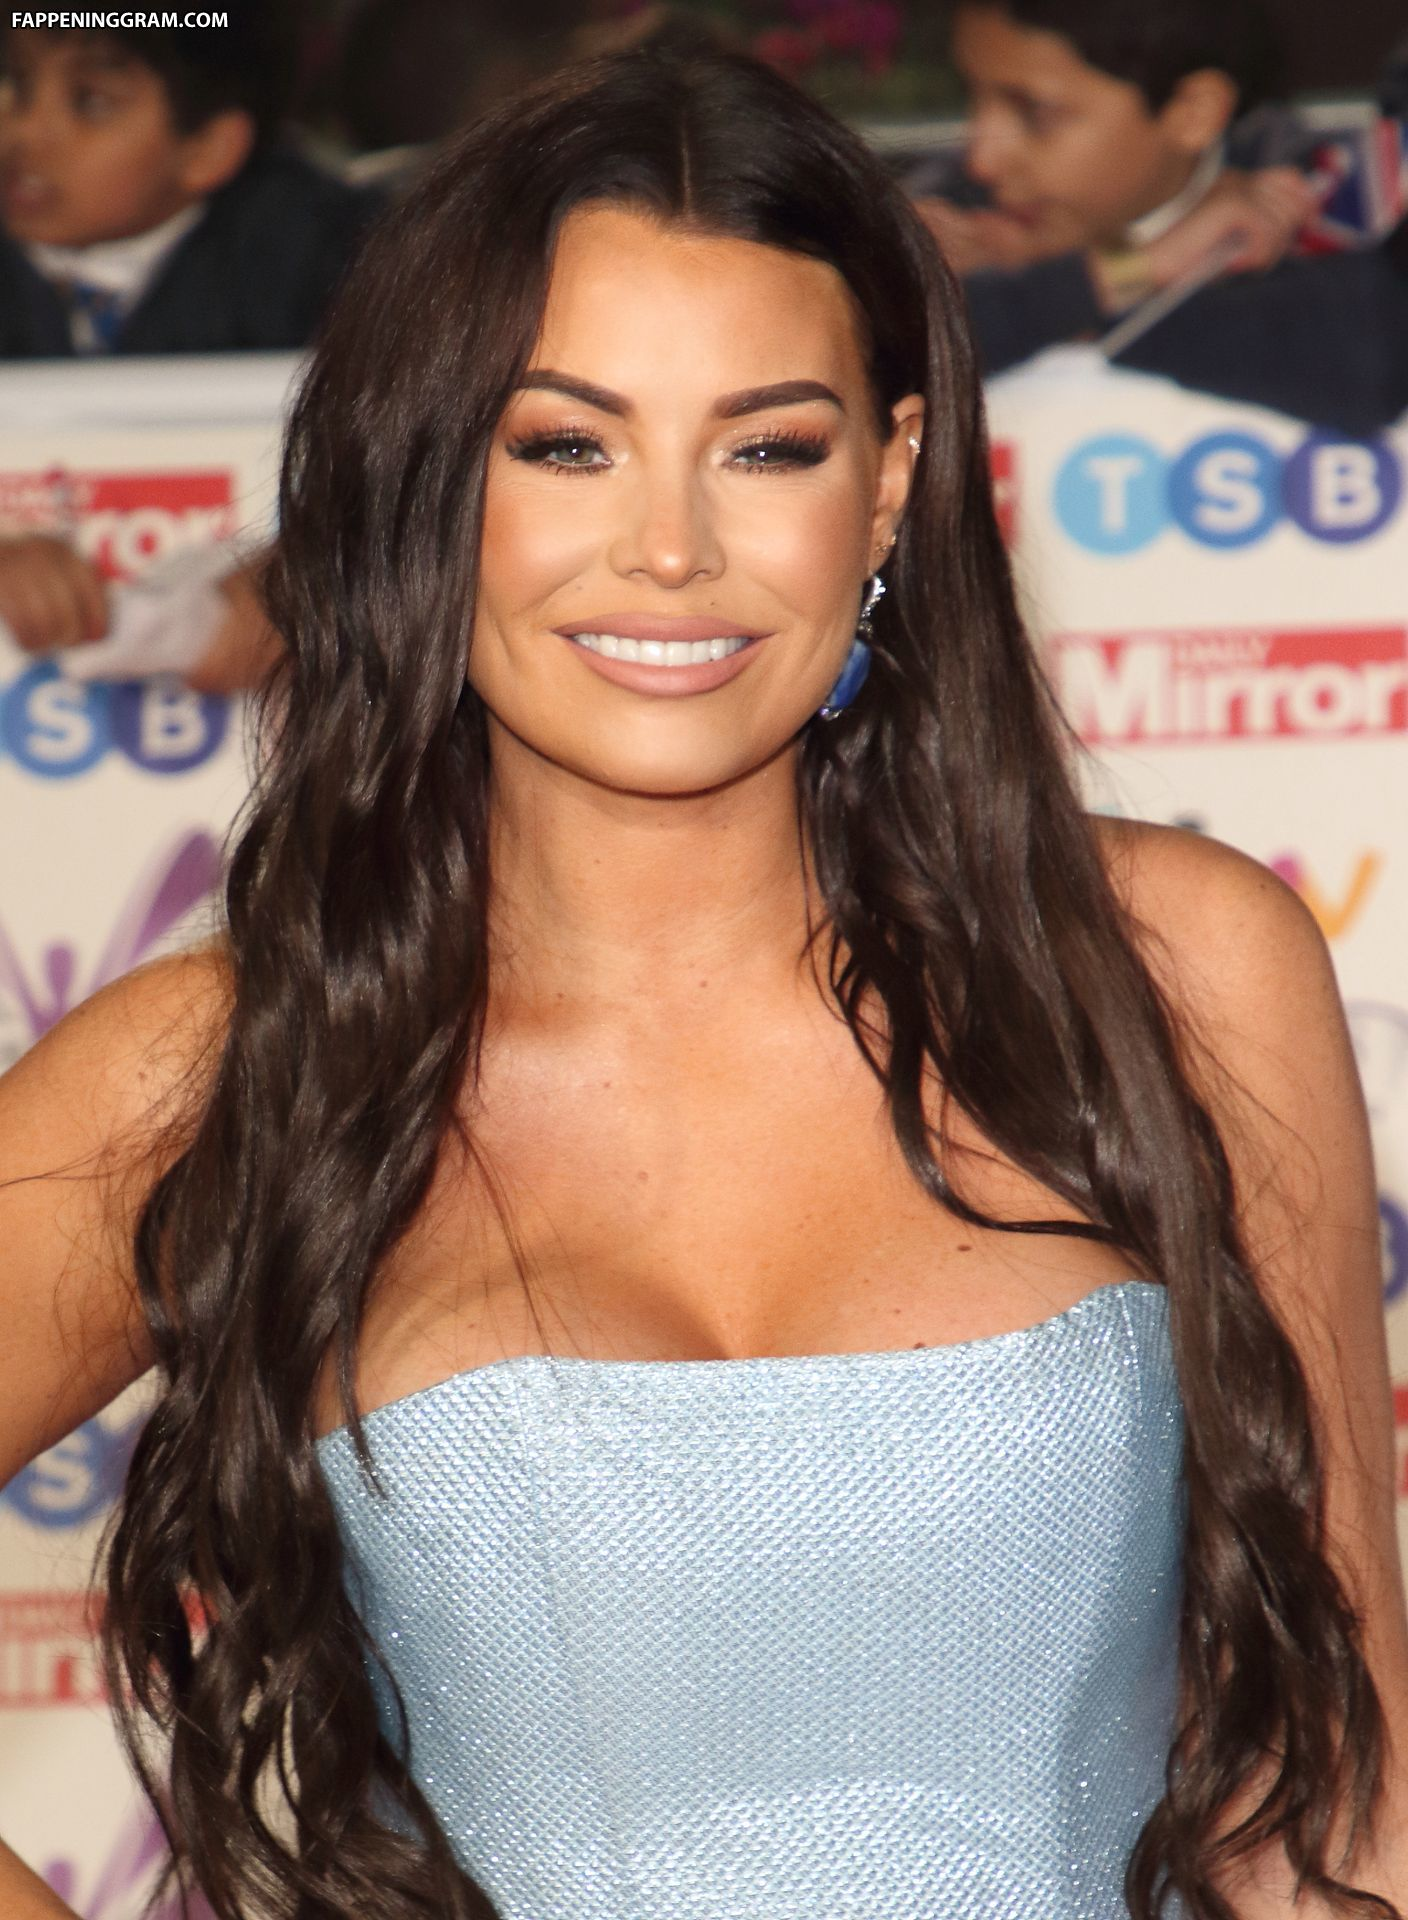 Jessica Wright Nude The Fappening - Page 6 - FappeningGram